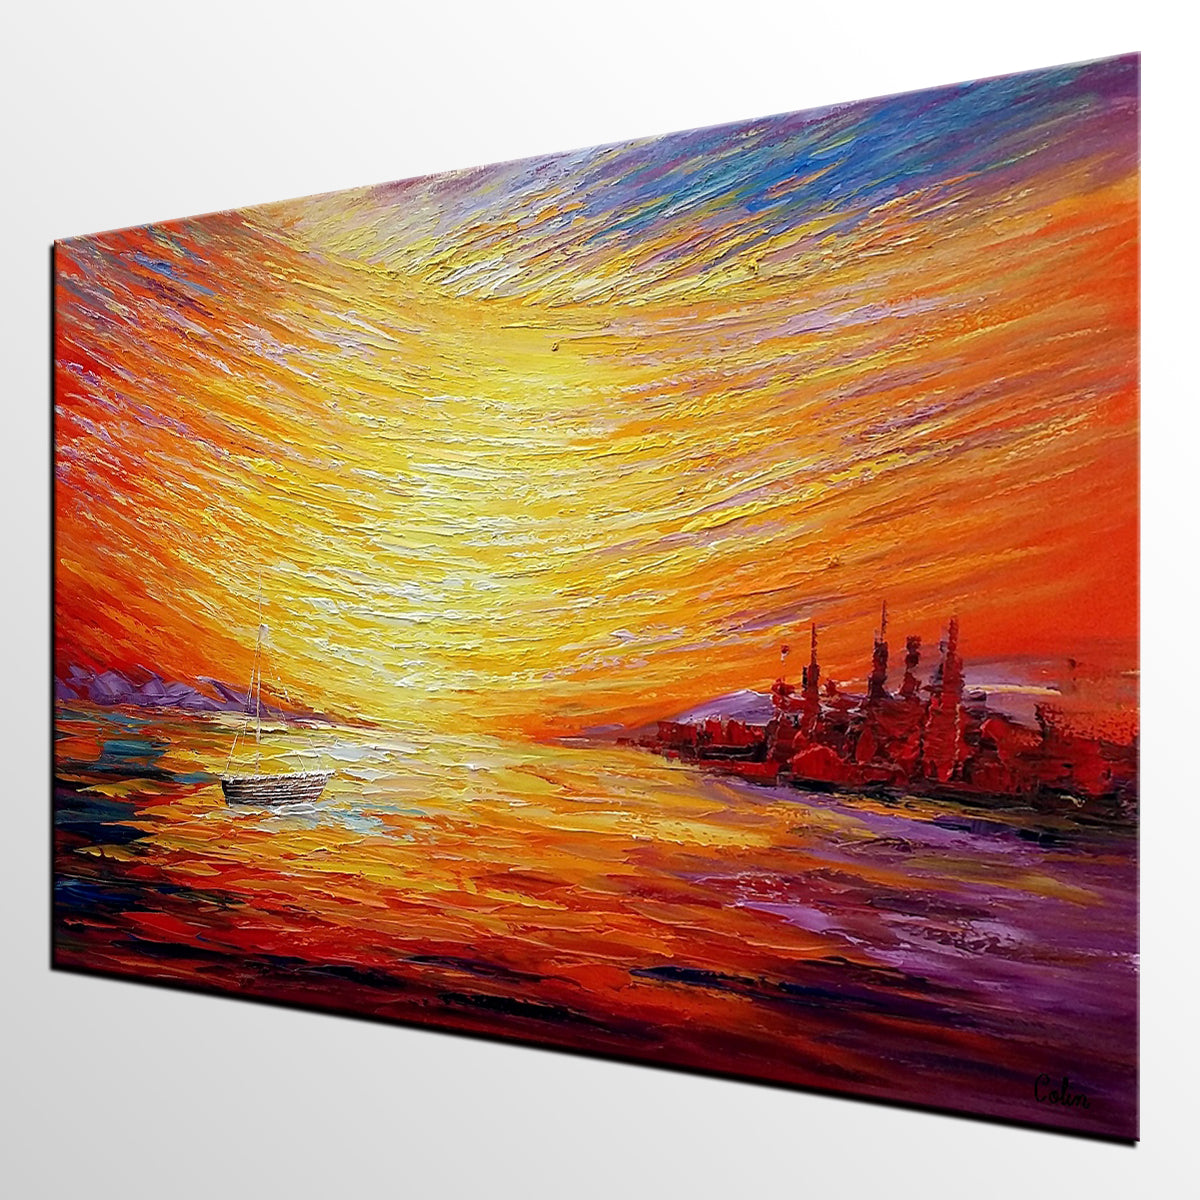 Sail Boat at Sea, Sunrise Painting, Oil Painting, Wall Art, Canvas Painting, Impasto Art